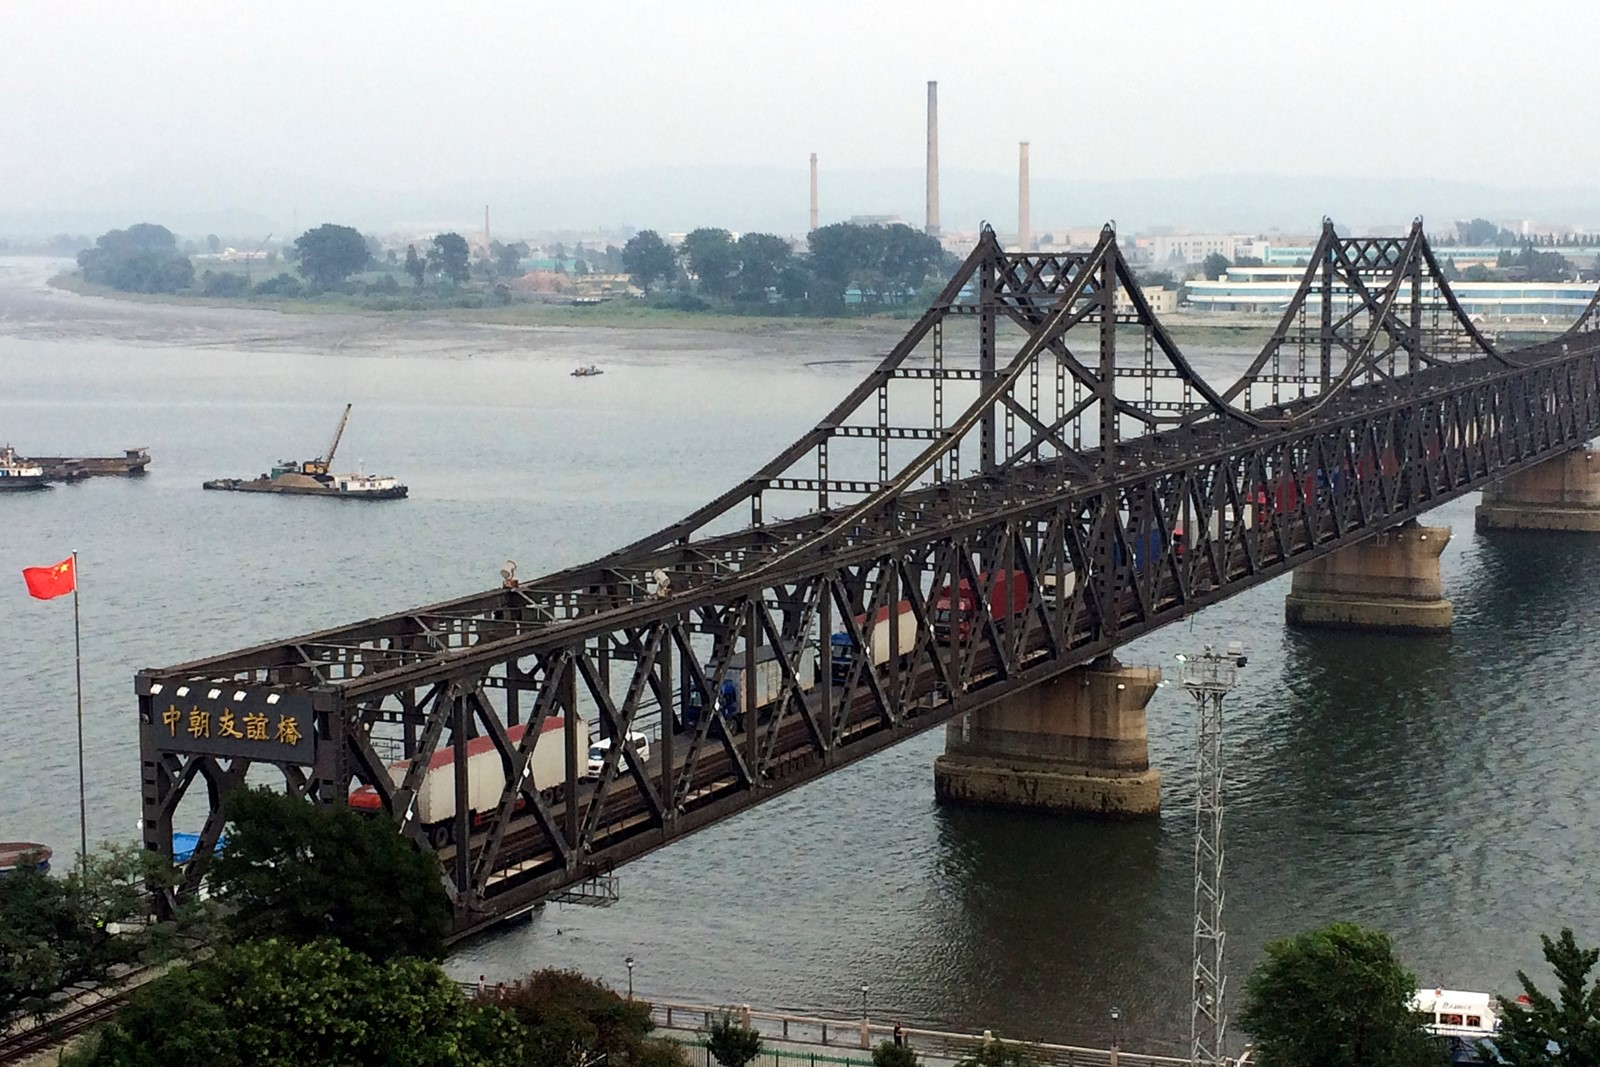 The Friendship Bridge in Dandong connecting China and North Korea has reportedly seen an increase in trucks, and a decrease in customs inspections. — Photograph: Helene Franchineau/Associated Press.